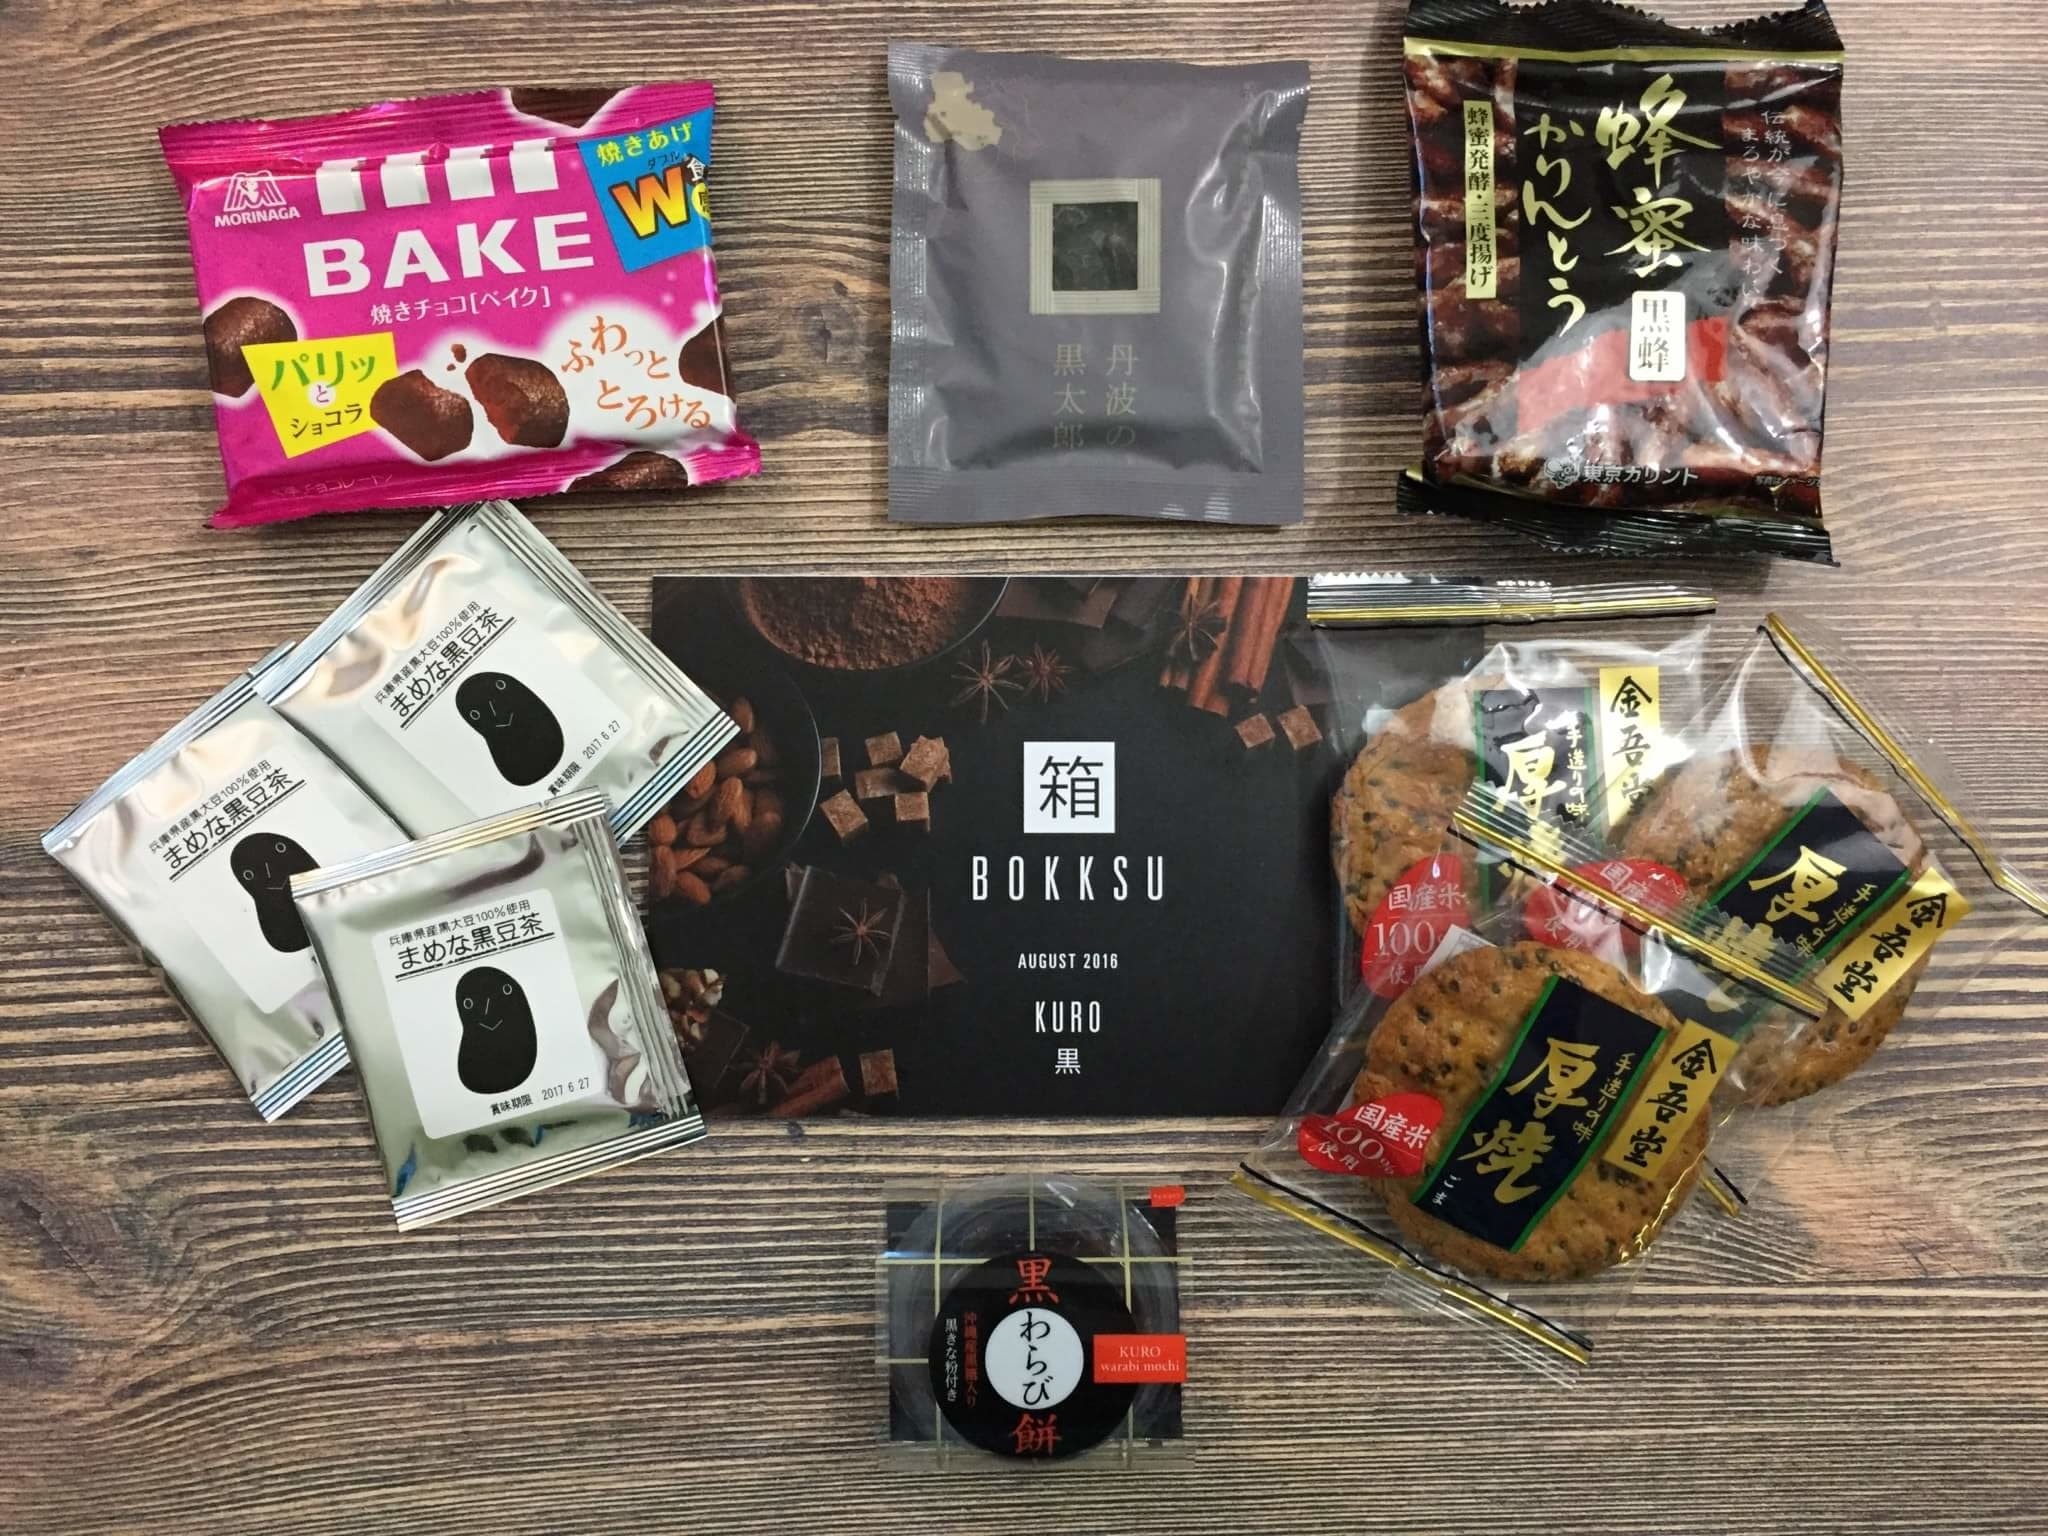 Bokksu August 2016 Subscription Box Review + Coupon